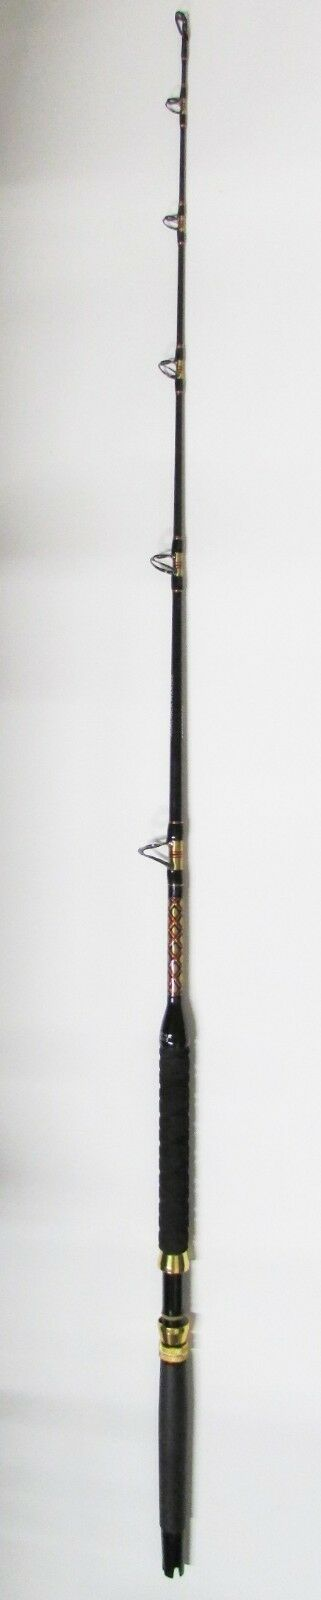 XCALIBER MARINE ROD  SALTWATER TURBO GUIDES 15-30 LB (gold AND RED TRIM)  buy cheap